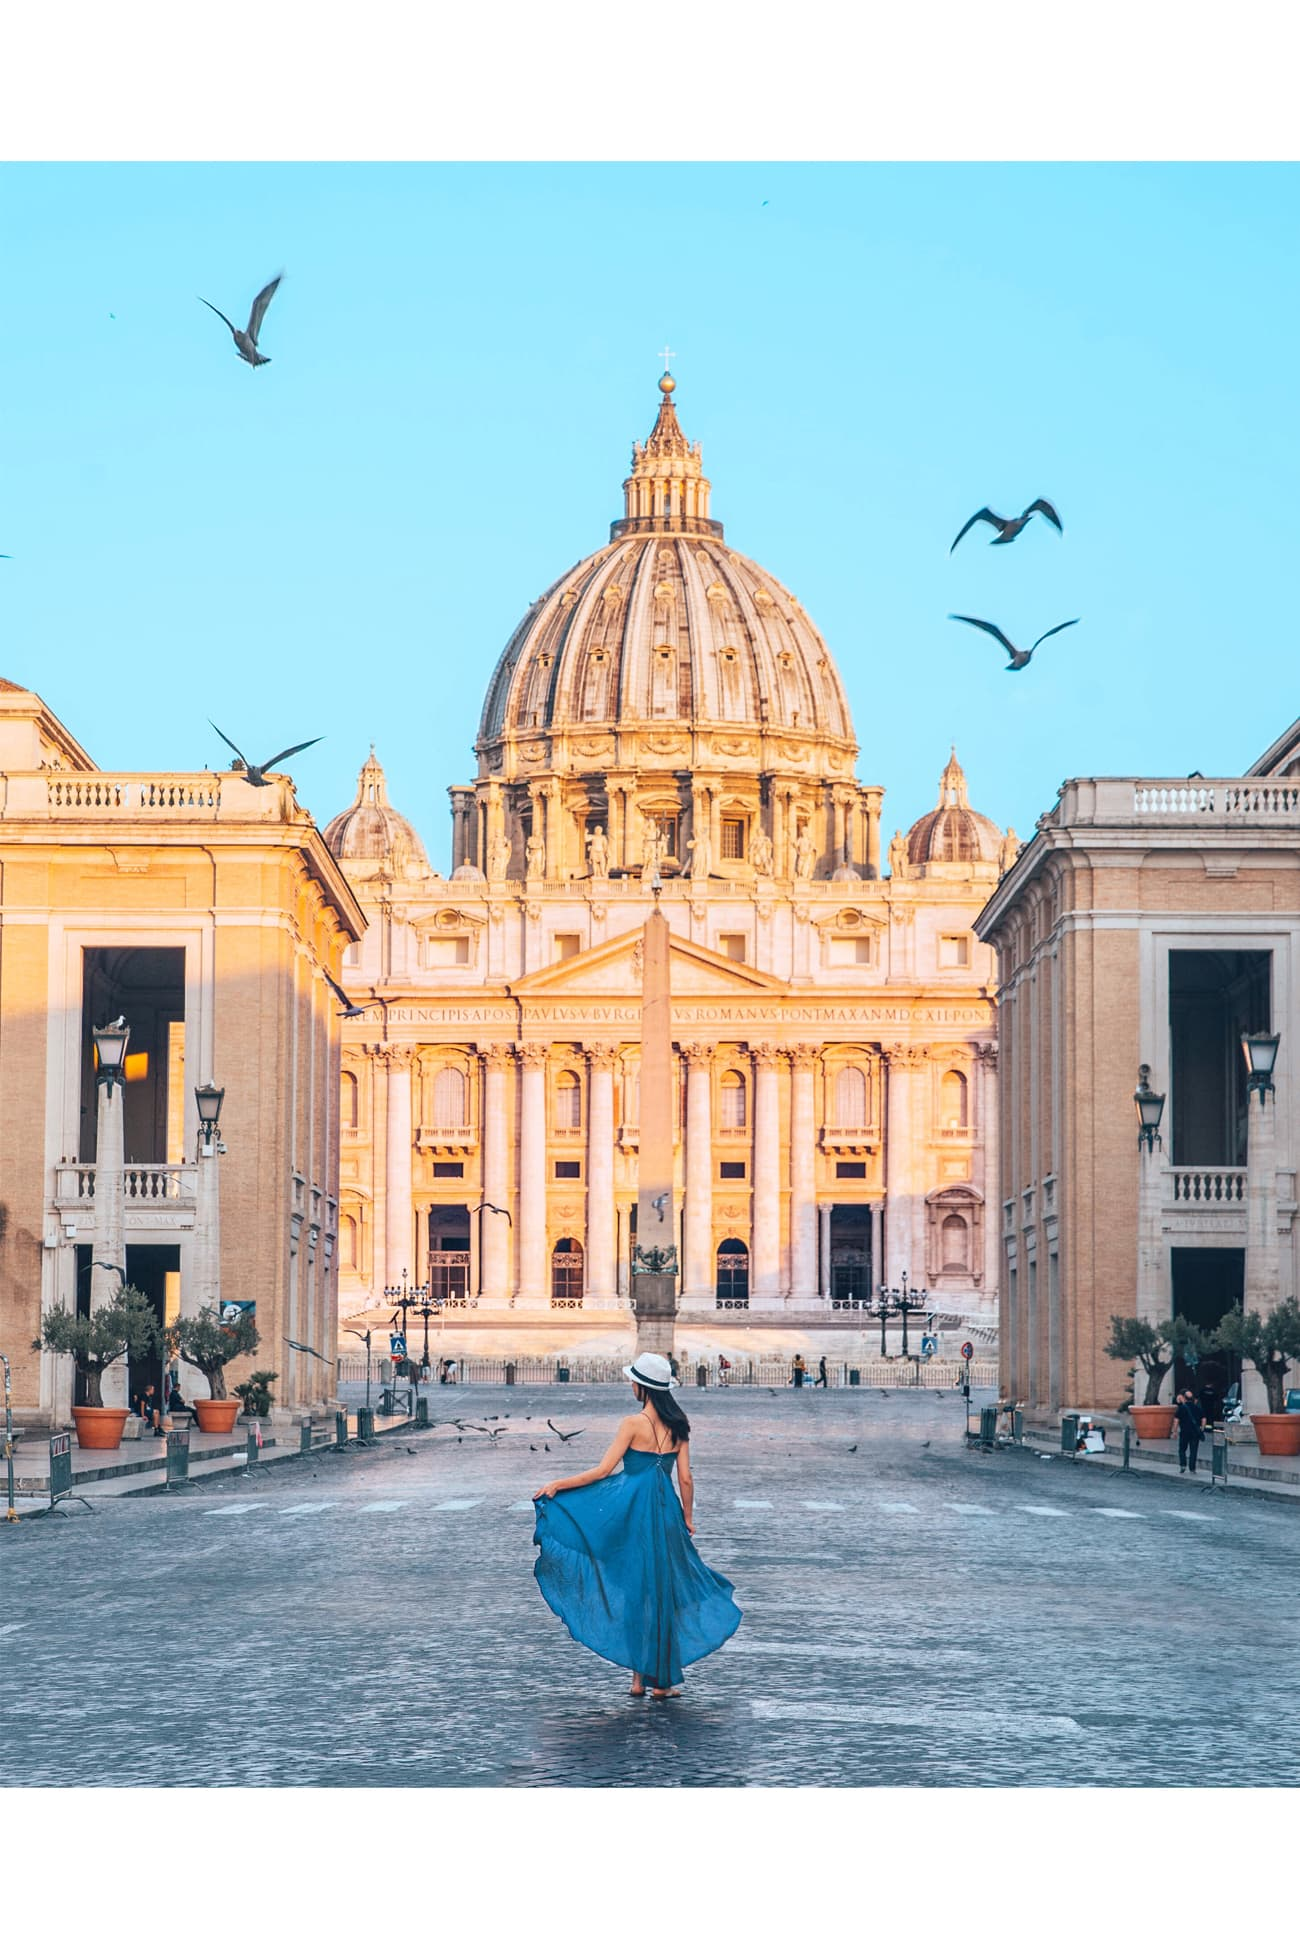 20 Days in Rome The Best Rome Itinerary + Tips From a Local